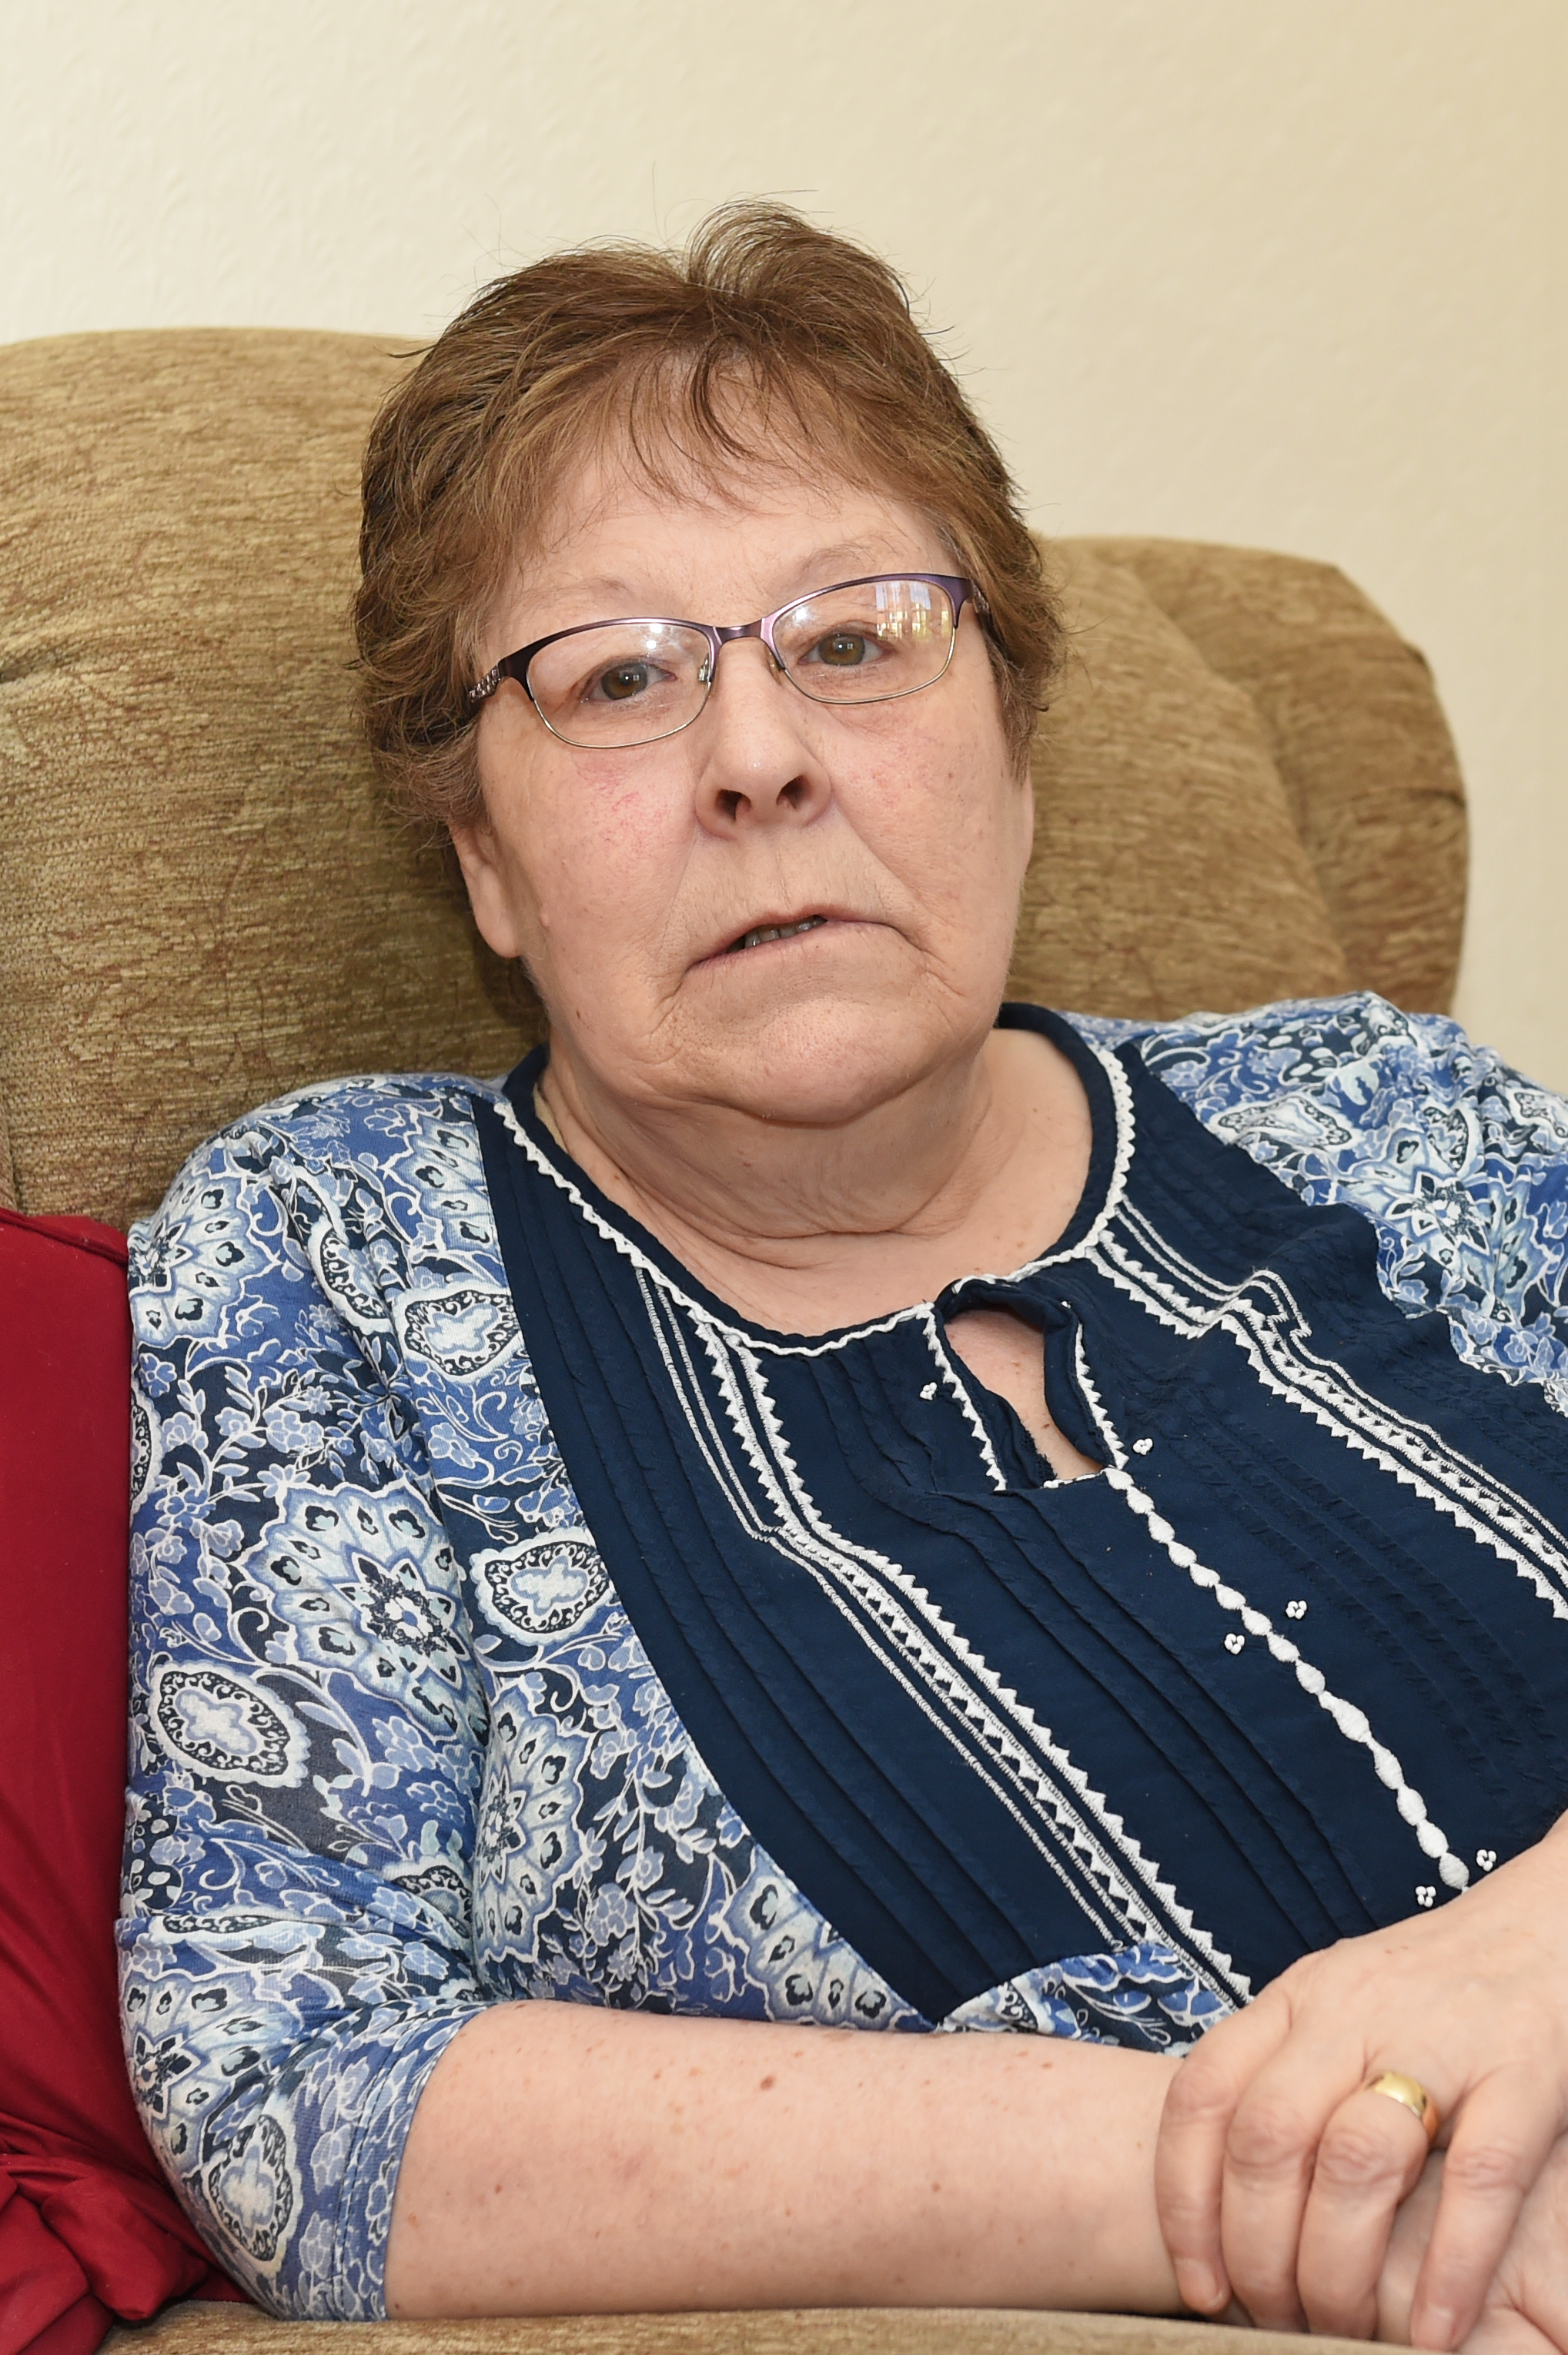 'I was left vulnerable because I couldn't pay' - new community alarm fee concern